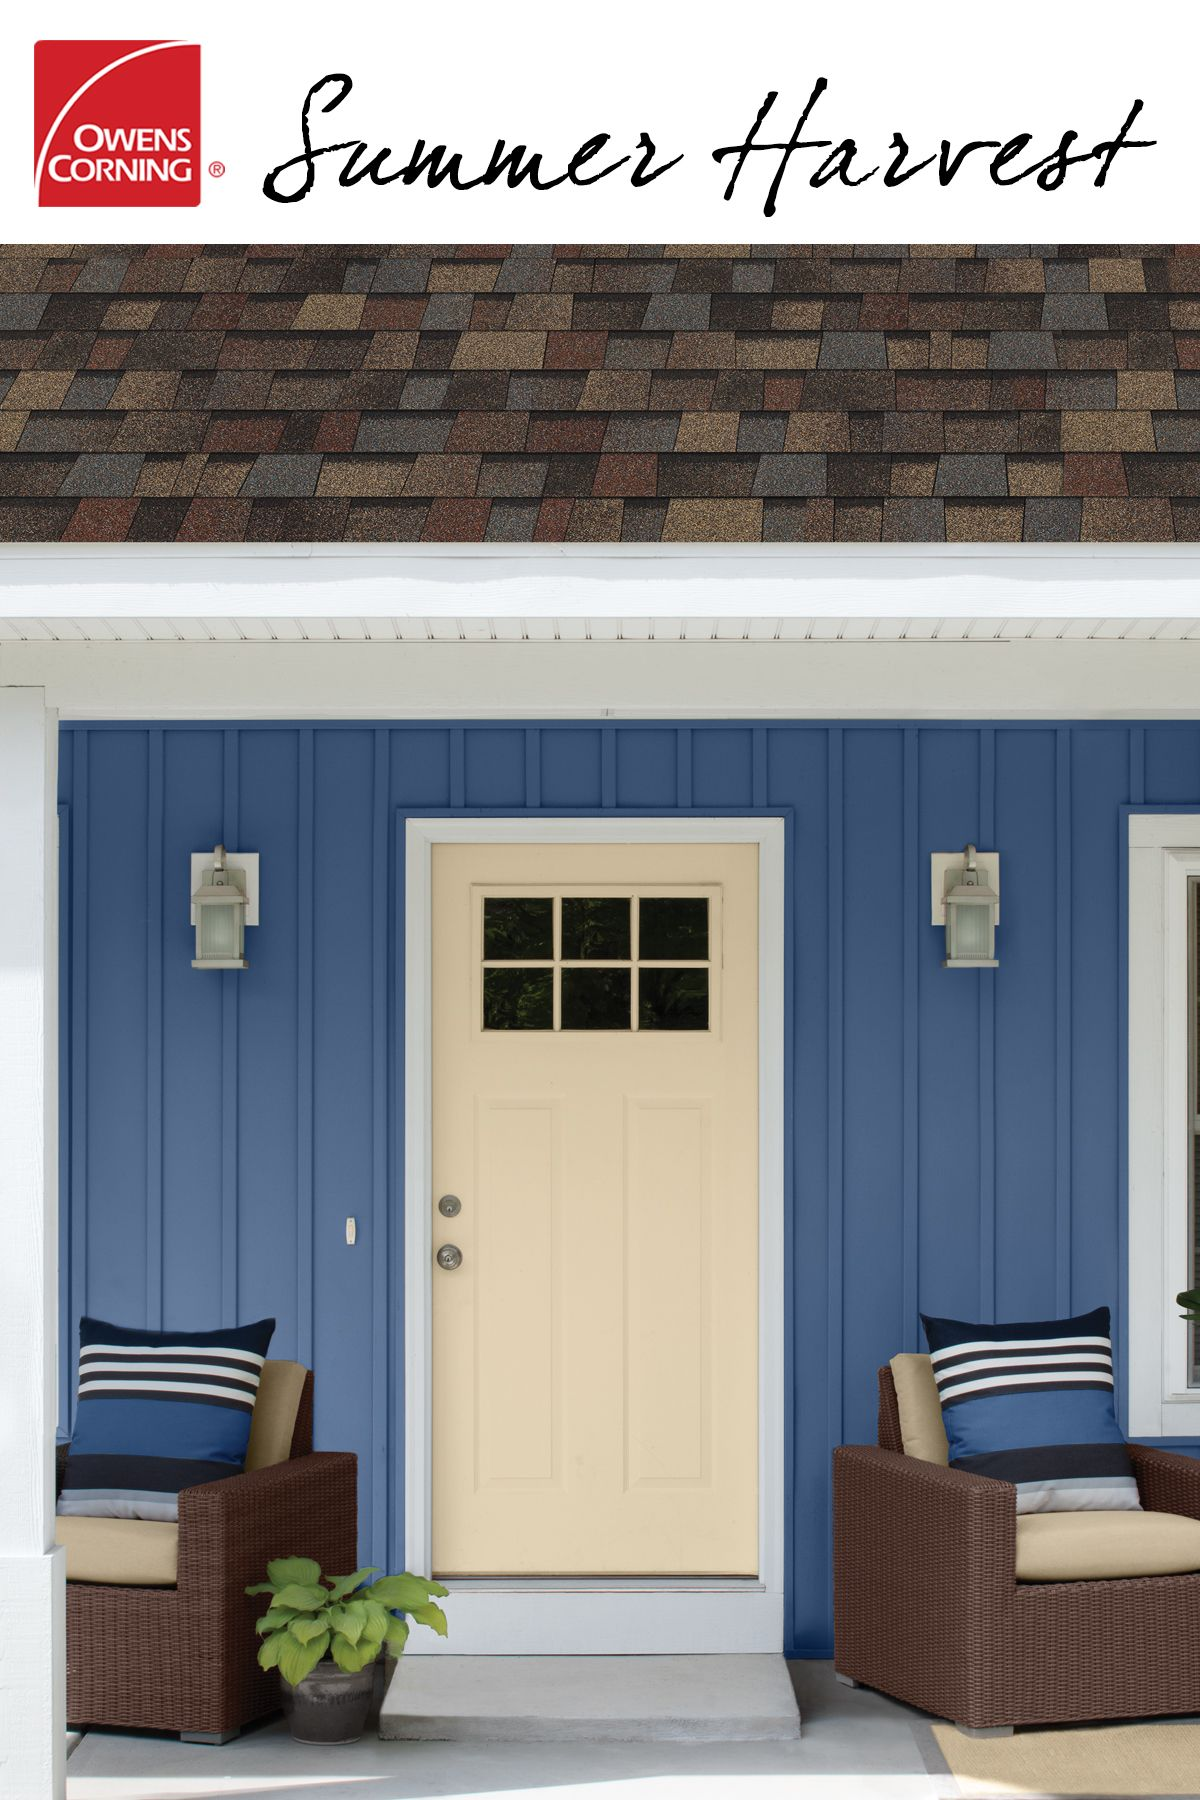 A Shingle Color Like Summer Harvest Are The Perfect Complement To The Yellow Exterior The Shingles Offer Curb Appeal Roof Shingle Colors Shingling Roof Colors